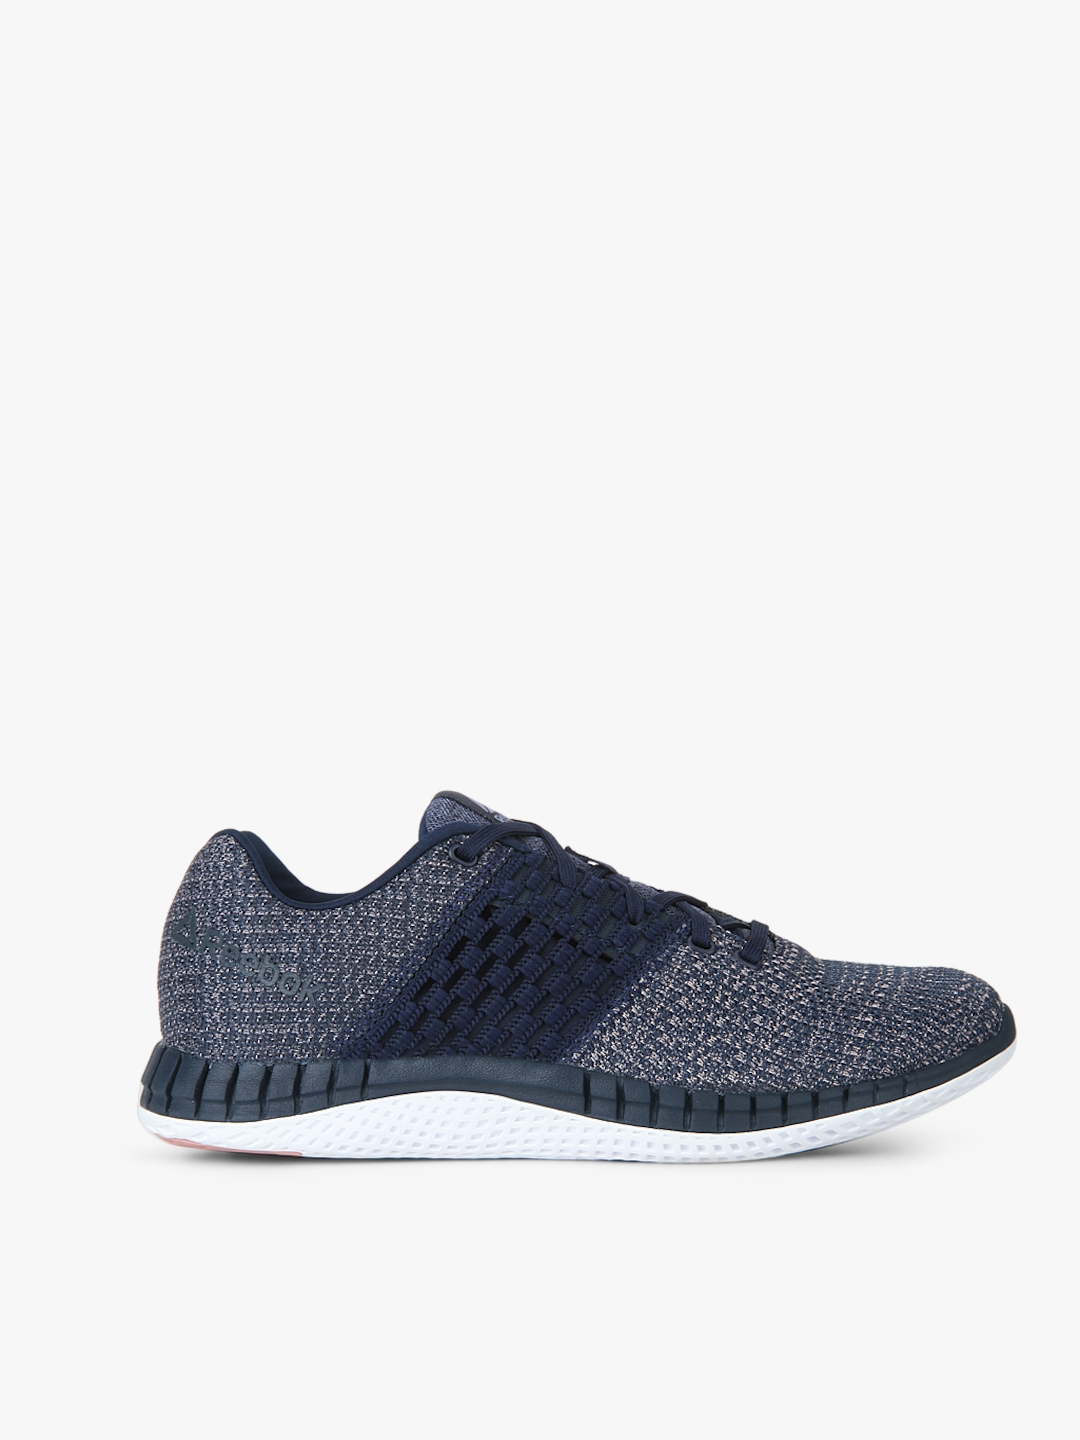 fc175c886f34 Buy Reebok Women Navy Blue CN1117 Running Shoes - Sports Shoes for ...